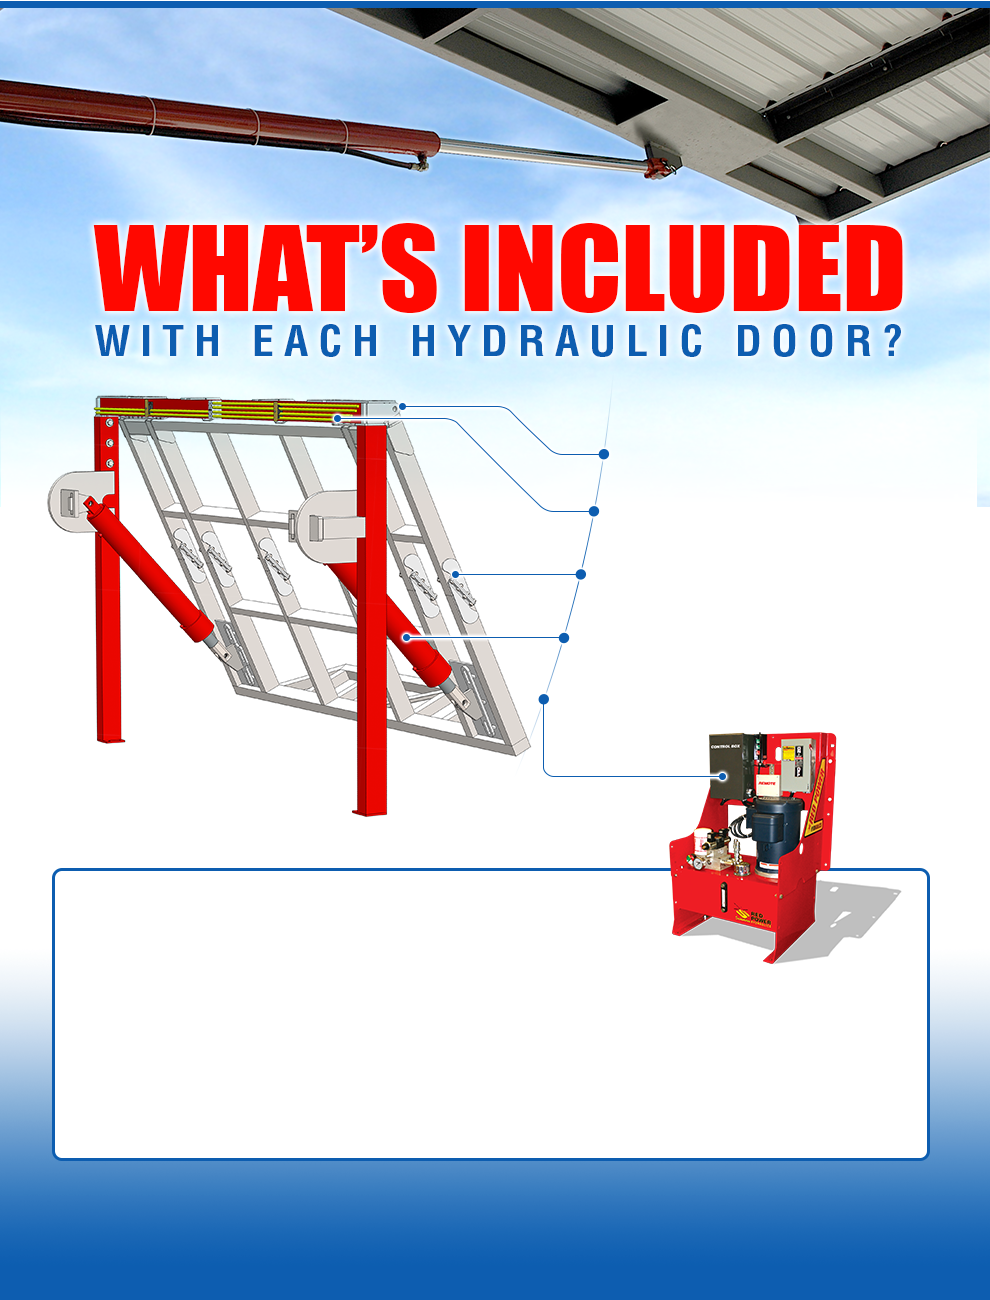 Product Feature - What's Included with Each Hydraulic Door?